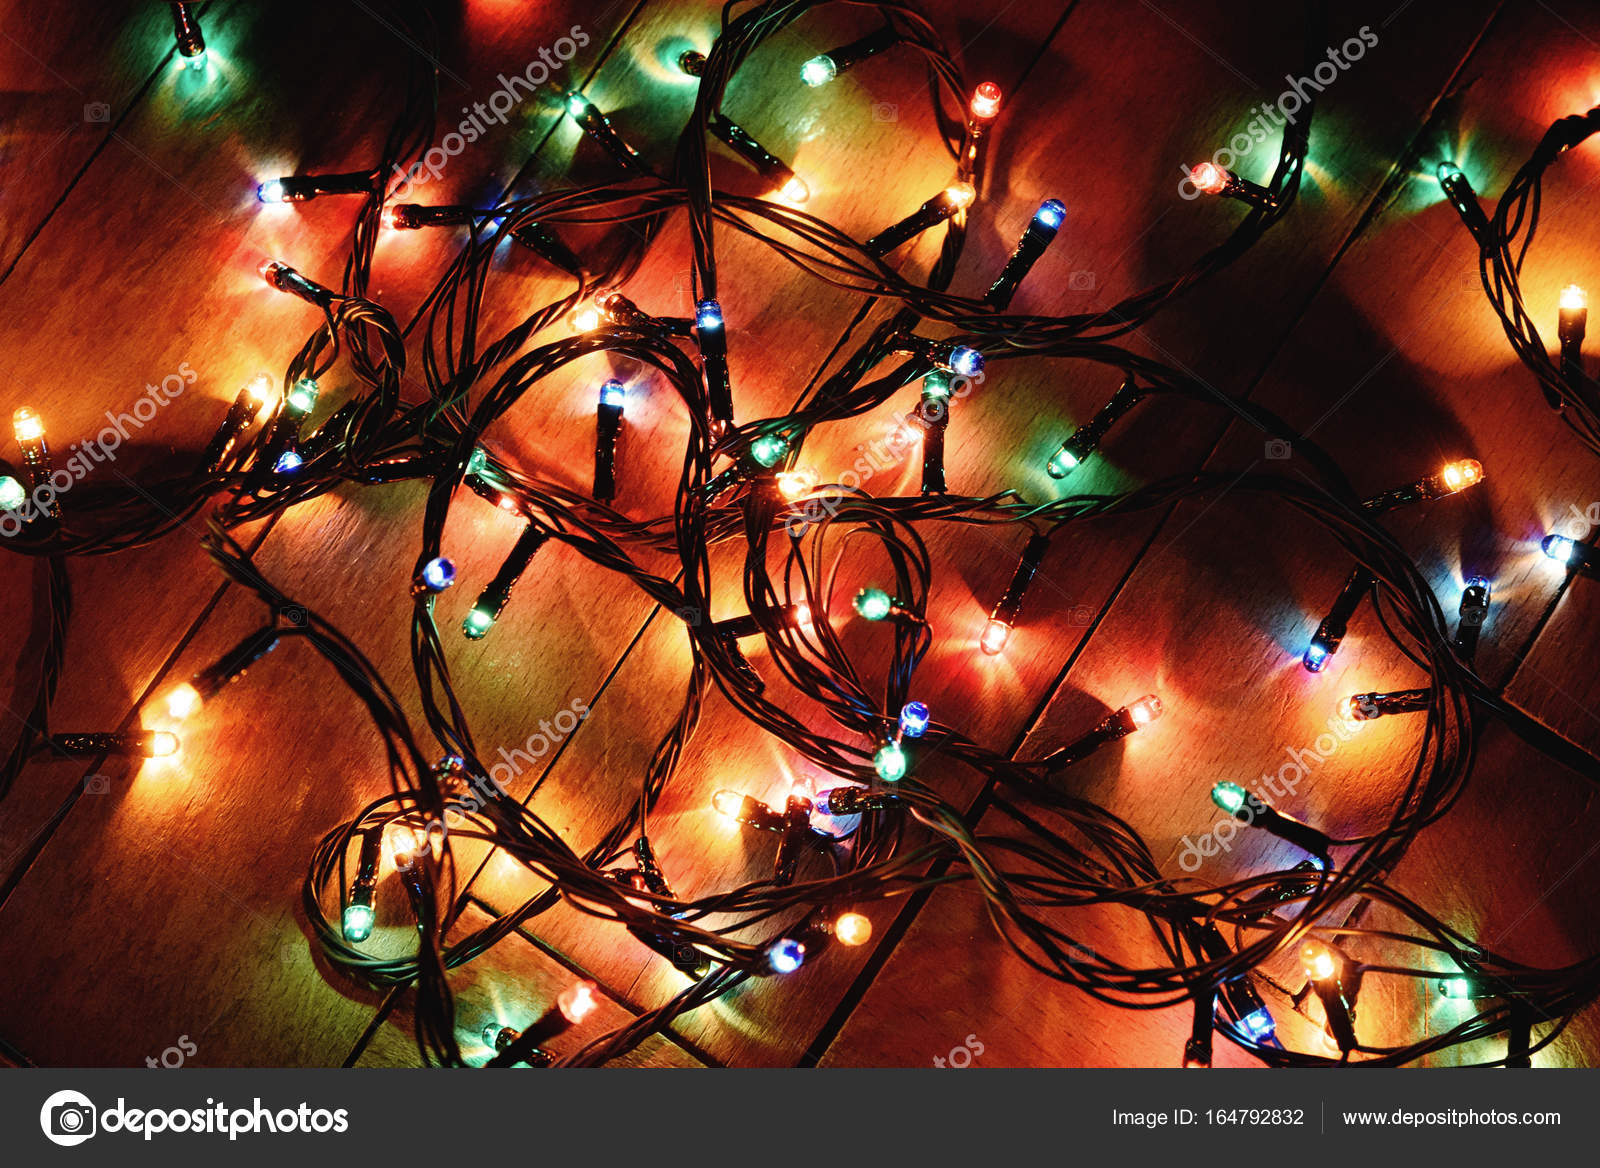 Stylish Retro Christmas Garland Lights On Wooden Background Photo By Sonyachny